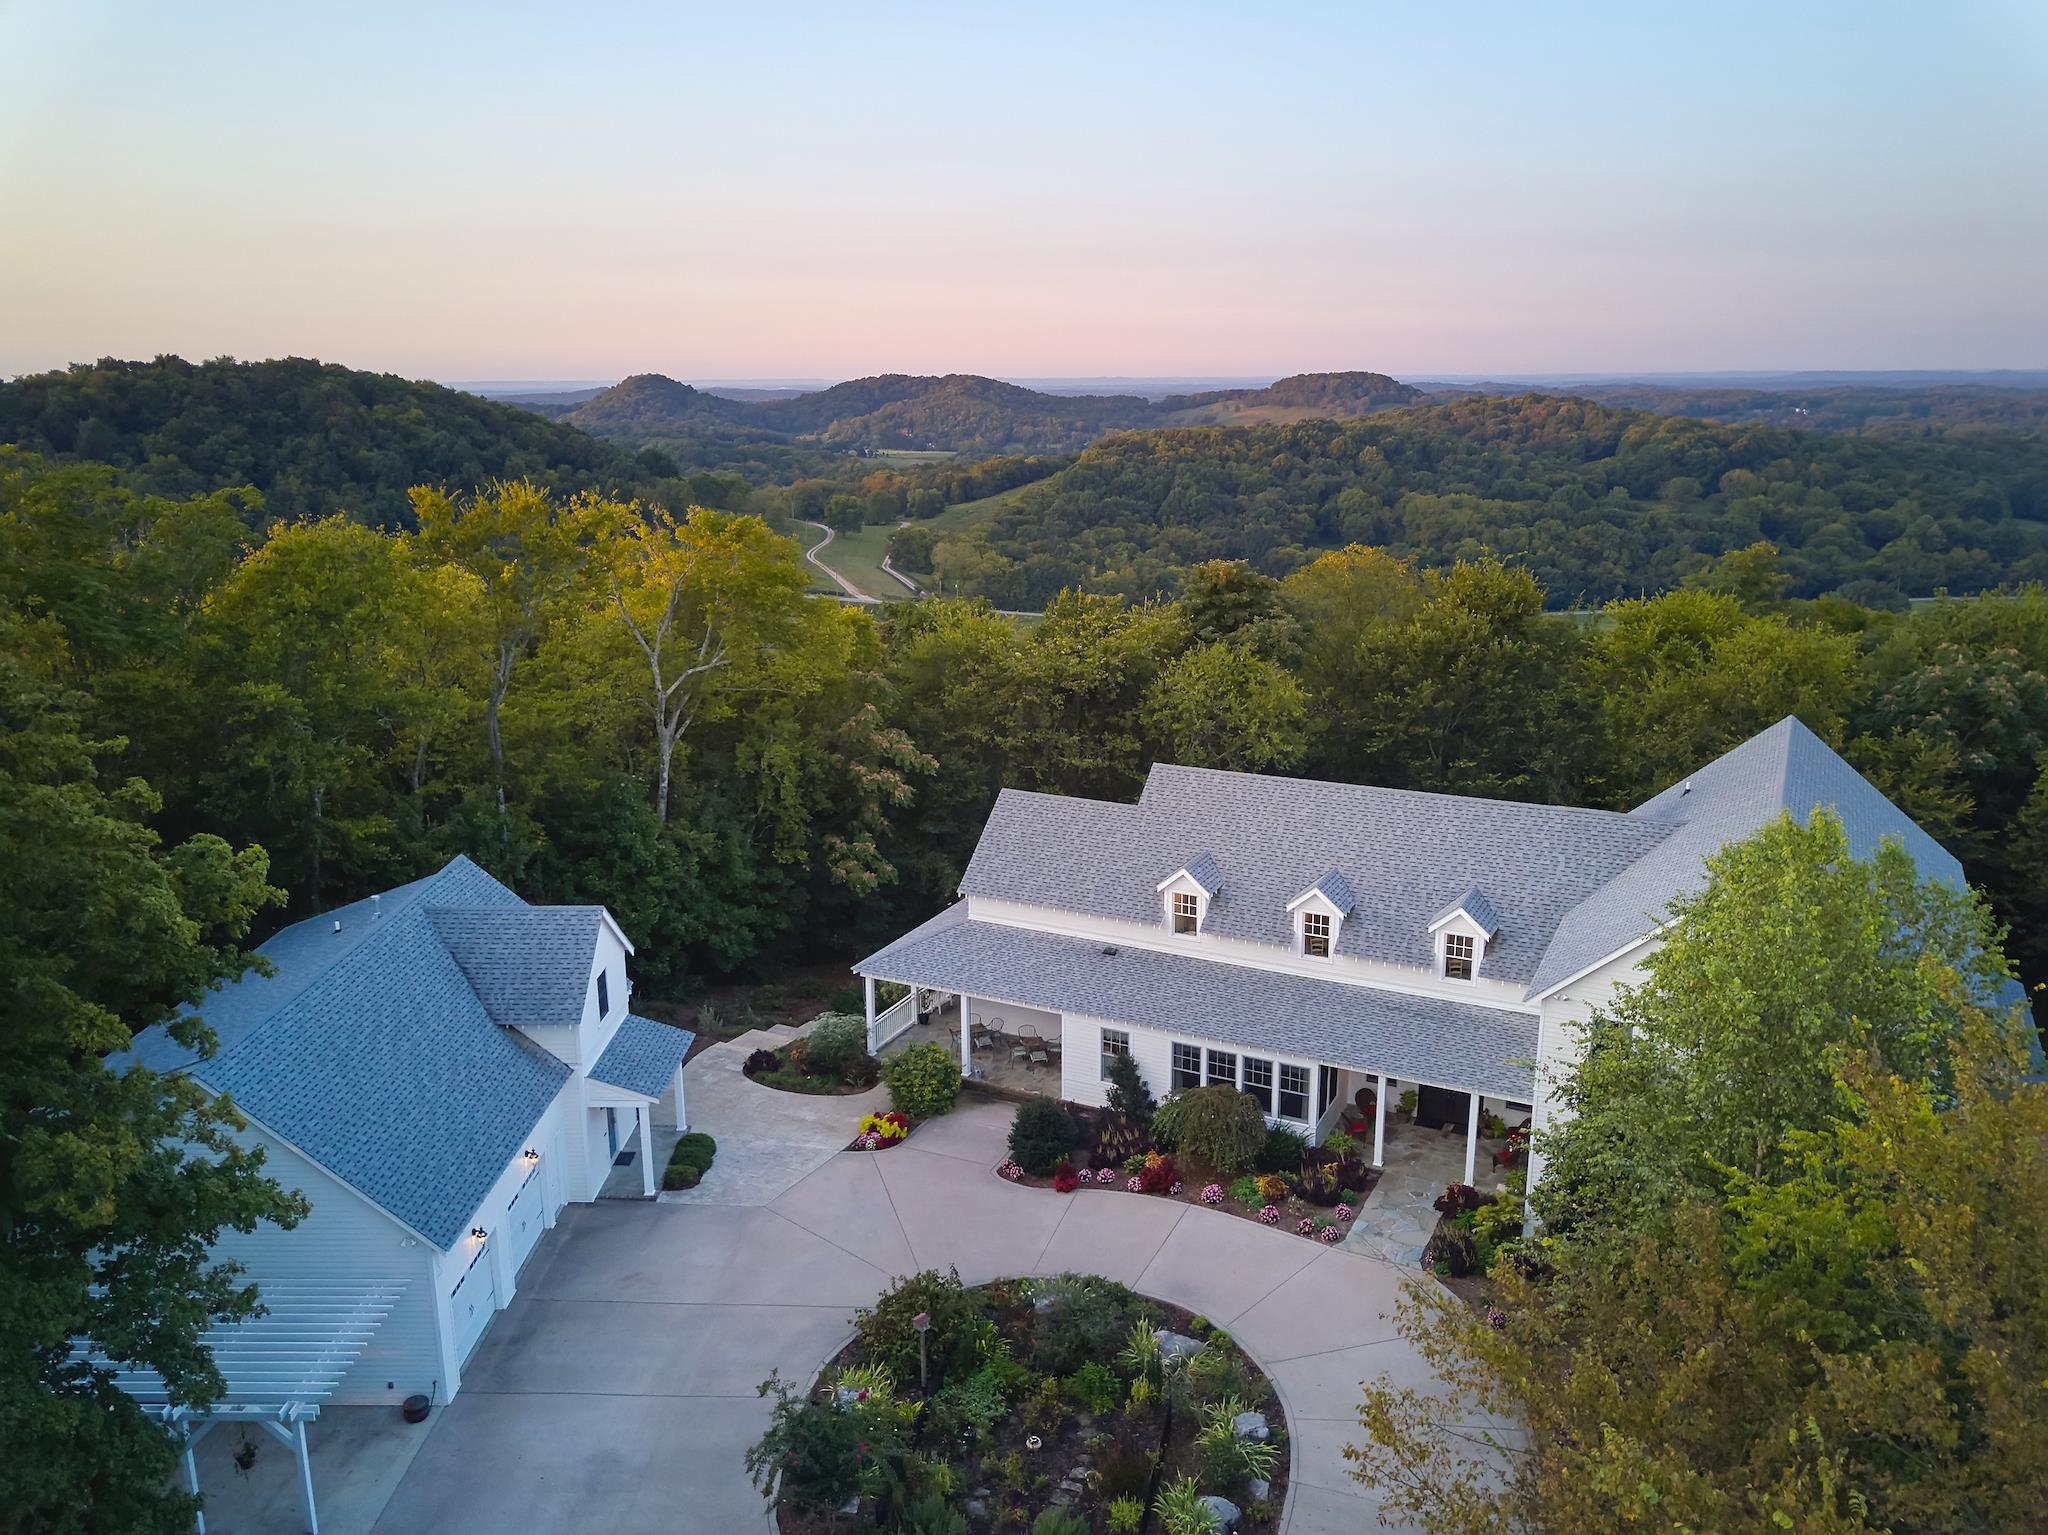 6775 Bethesda Arno Rd, Thompsons Station, TN 37179 - Thompsons Station, TN real estate listing